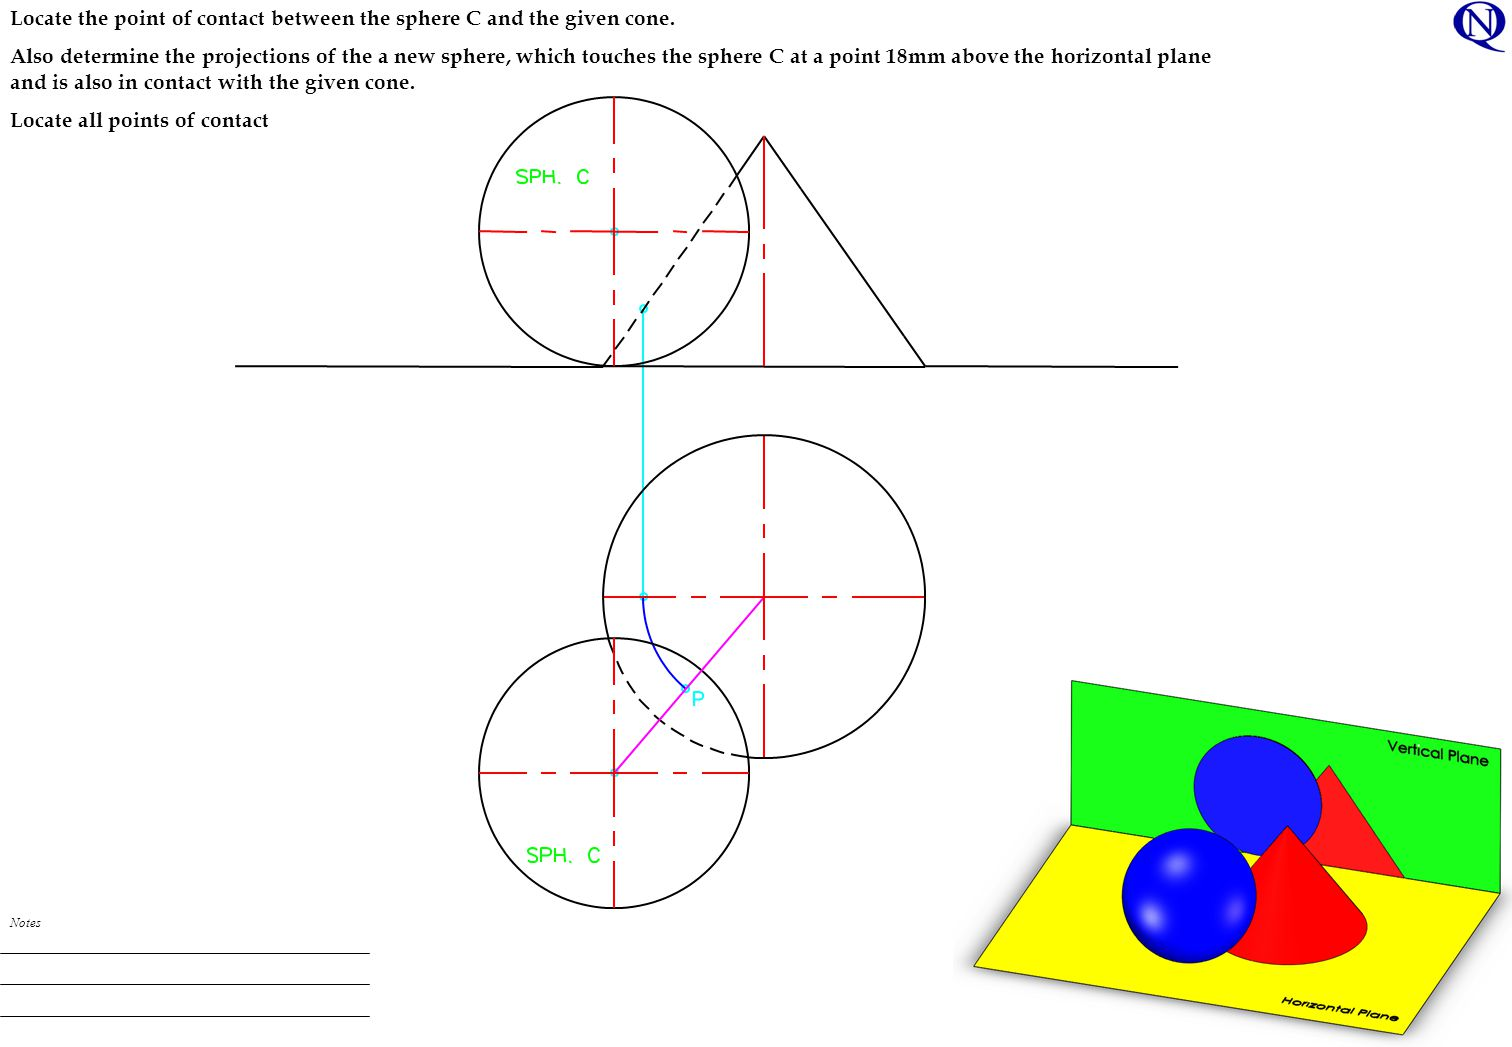 Locate the point of contact between the sphere C and the given cone.